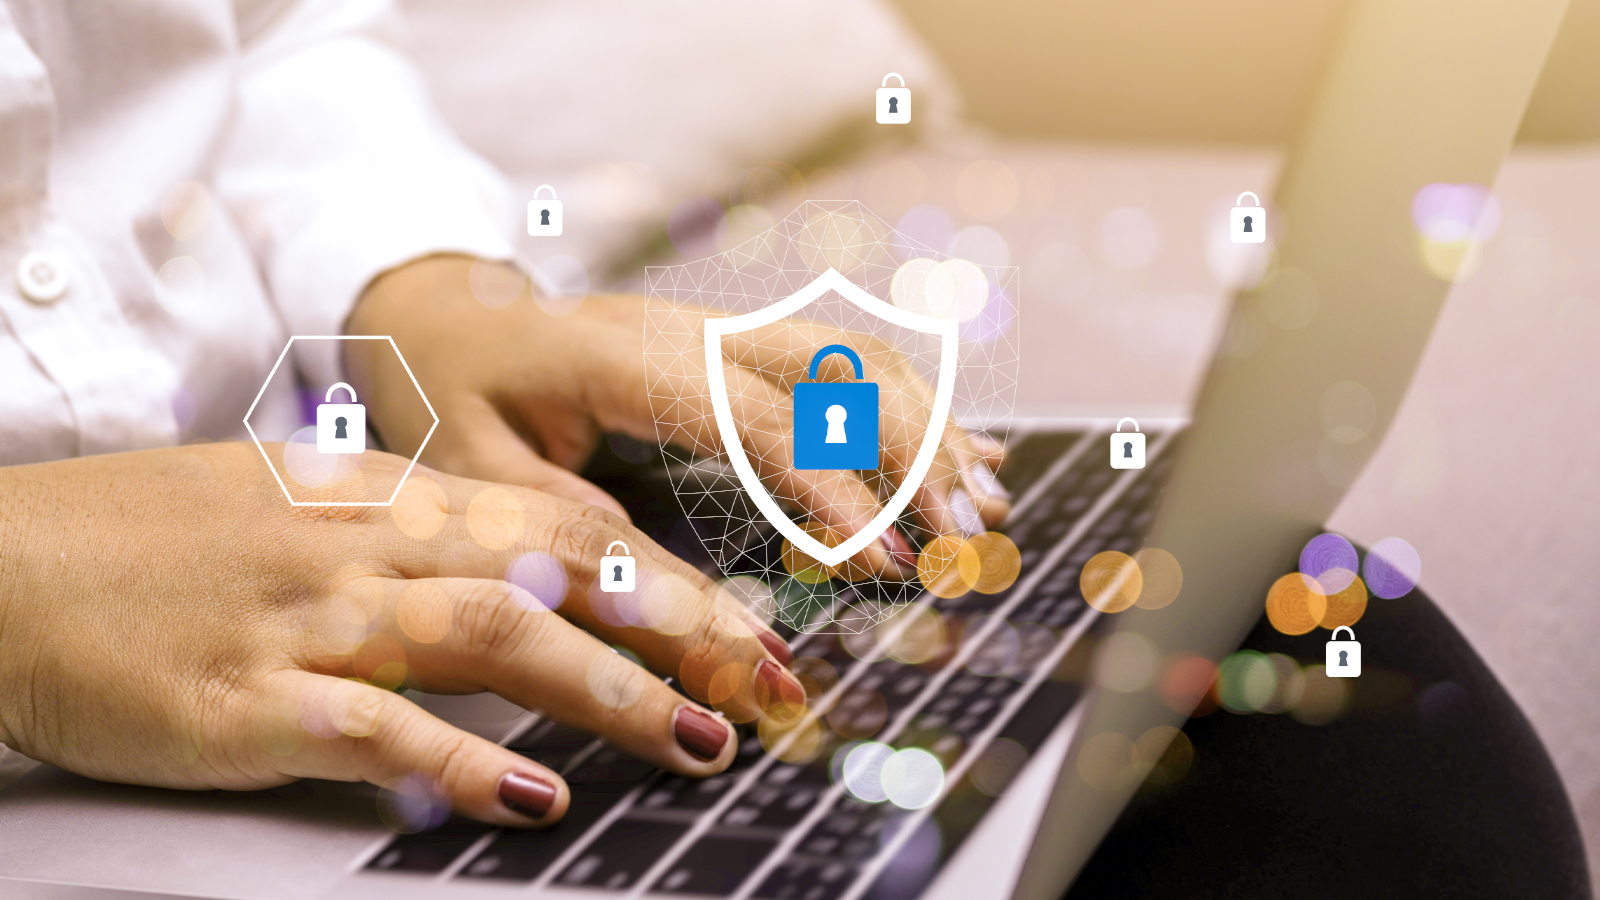 persons hands typing on keyboard with security lock graphics superimposed on image